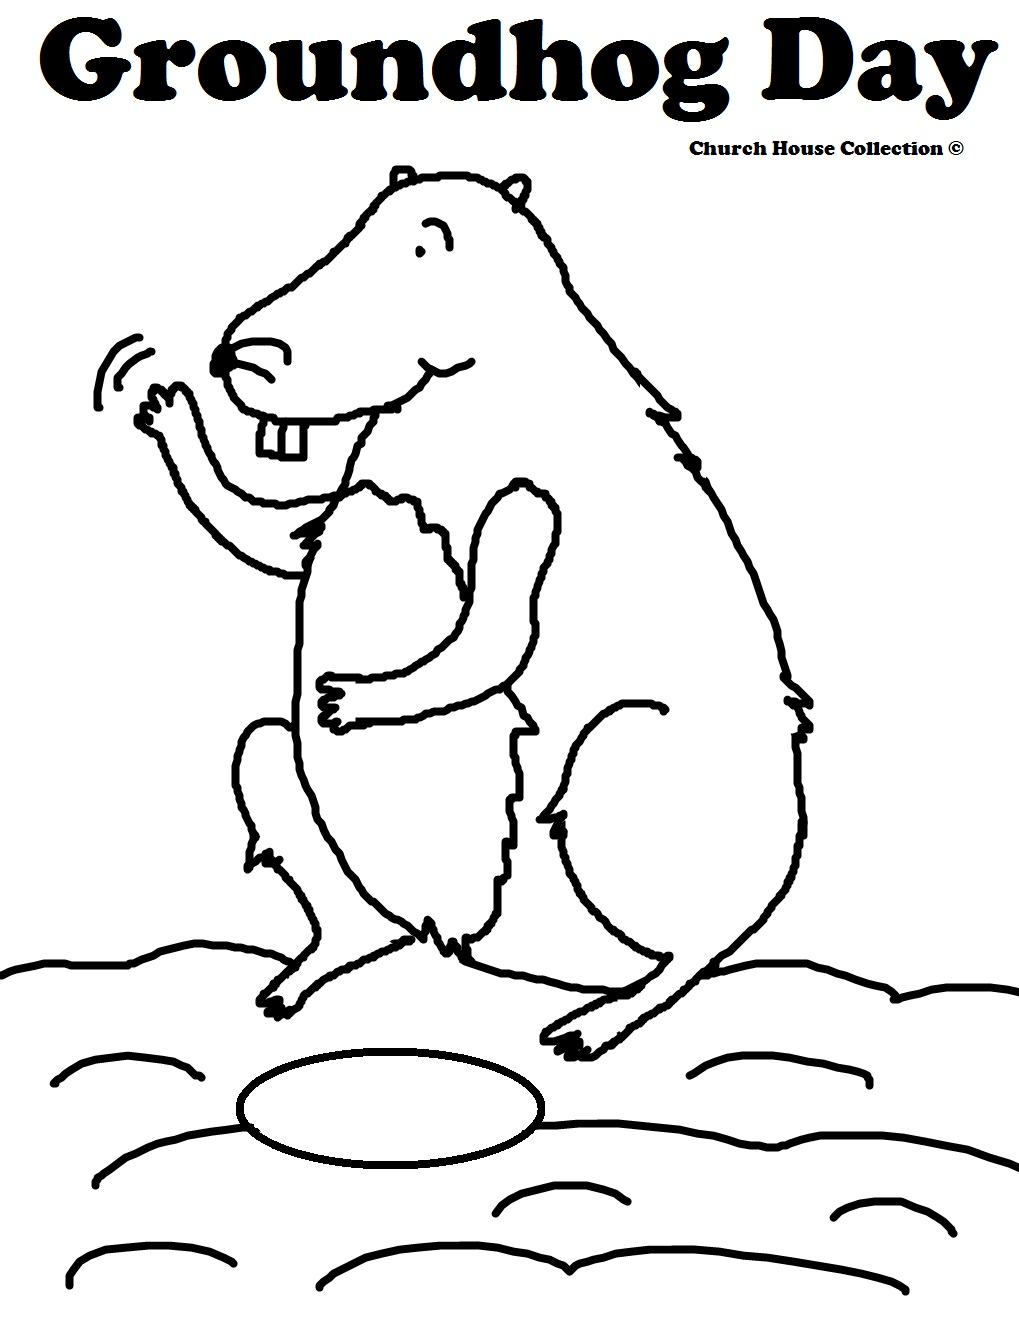 Groundhog Coloring Pages Preschool At Getdrawings Com Free For